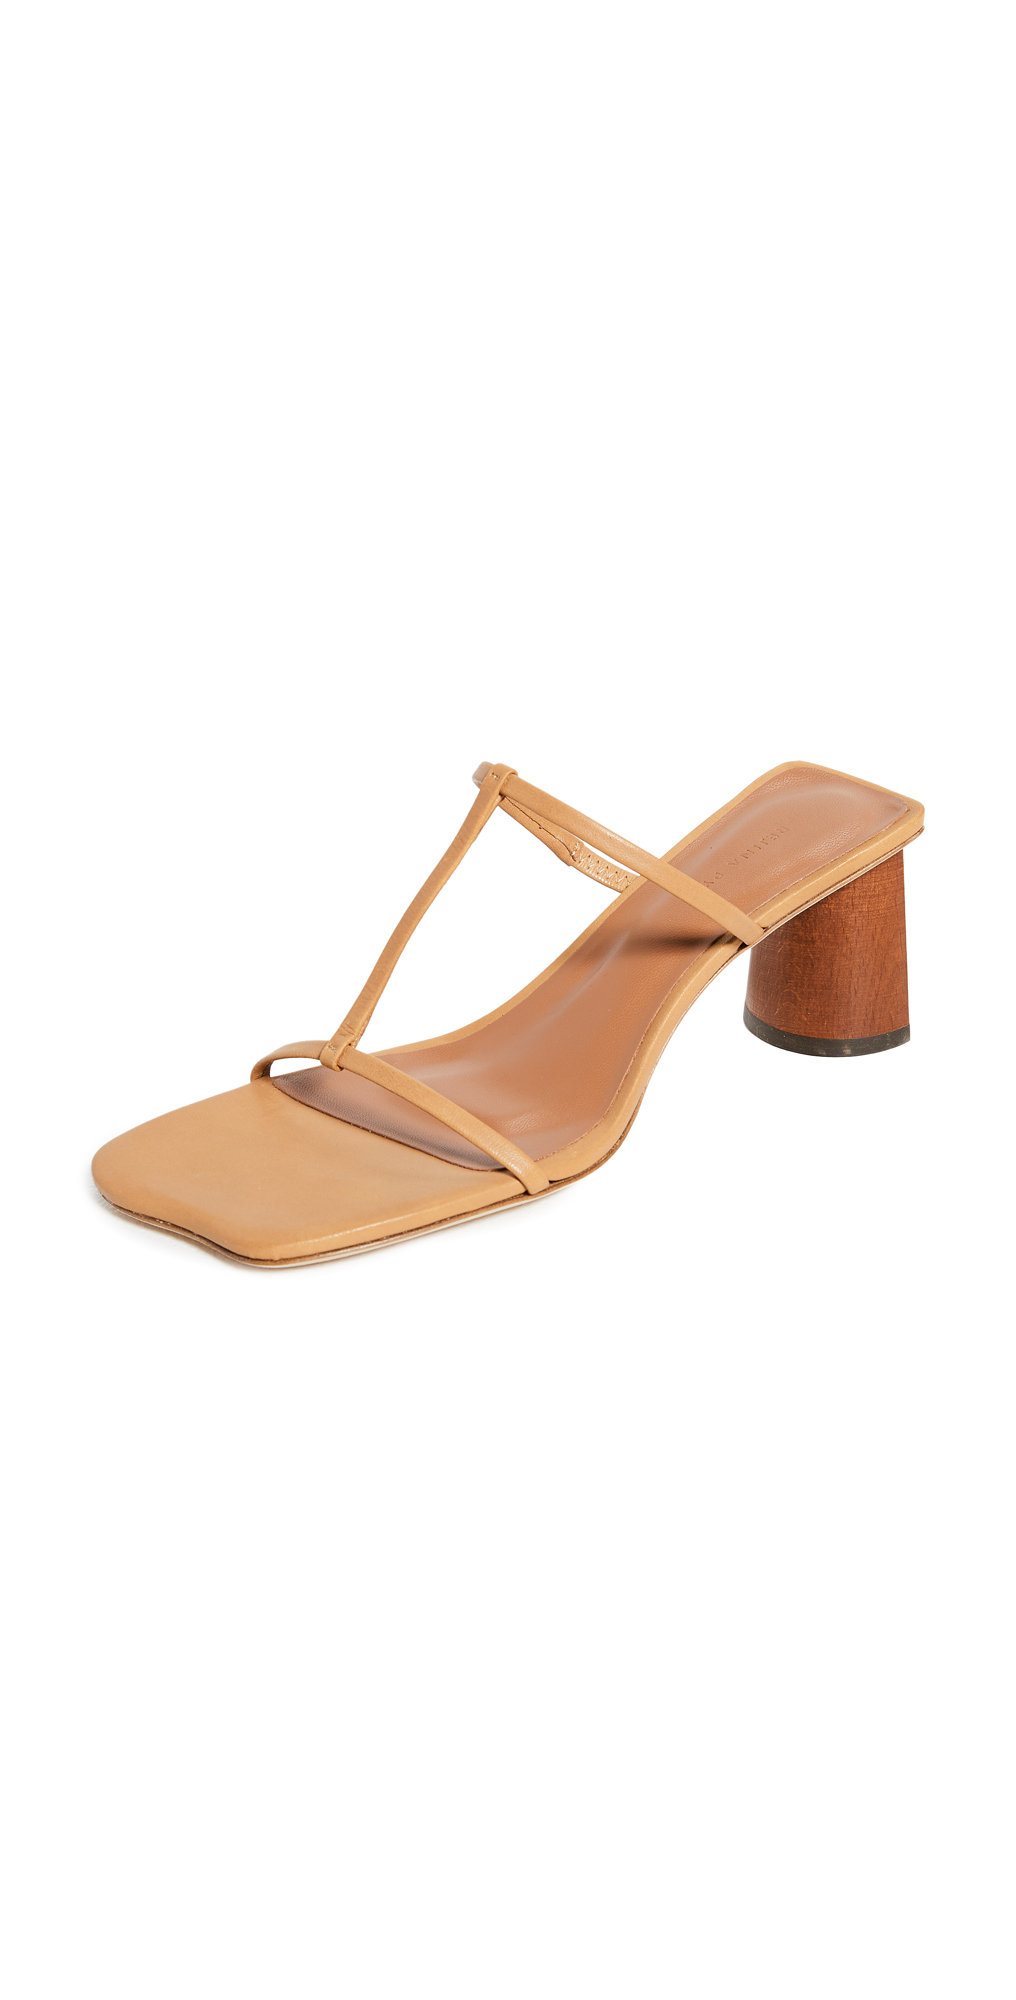 Rejina Pyo Erin 60mm Sandals